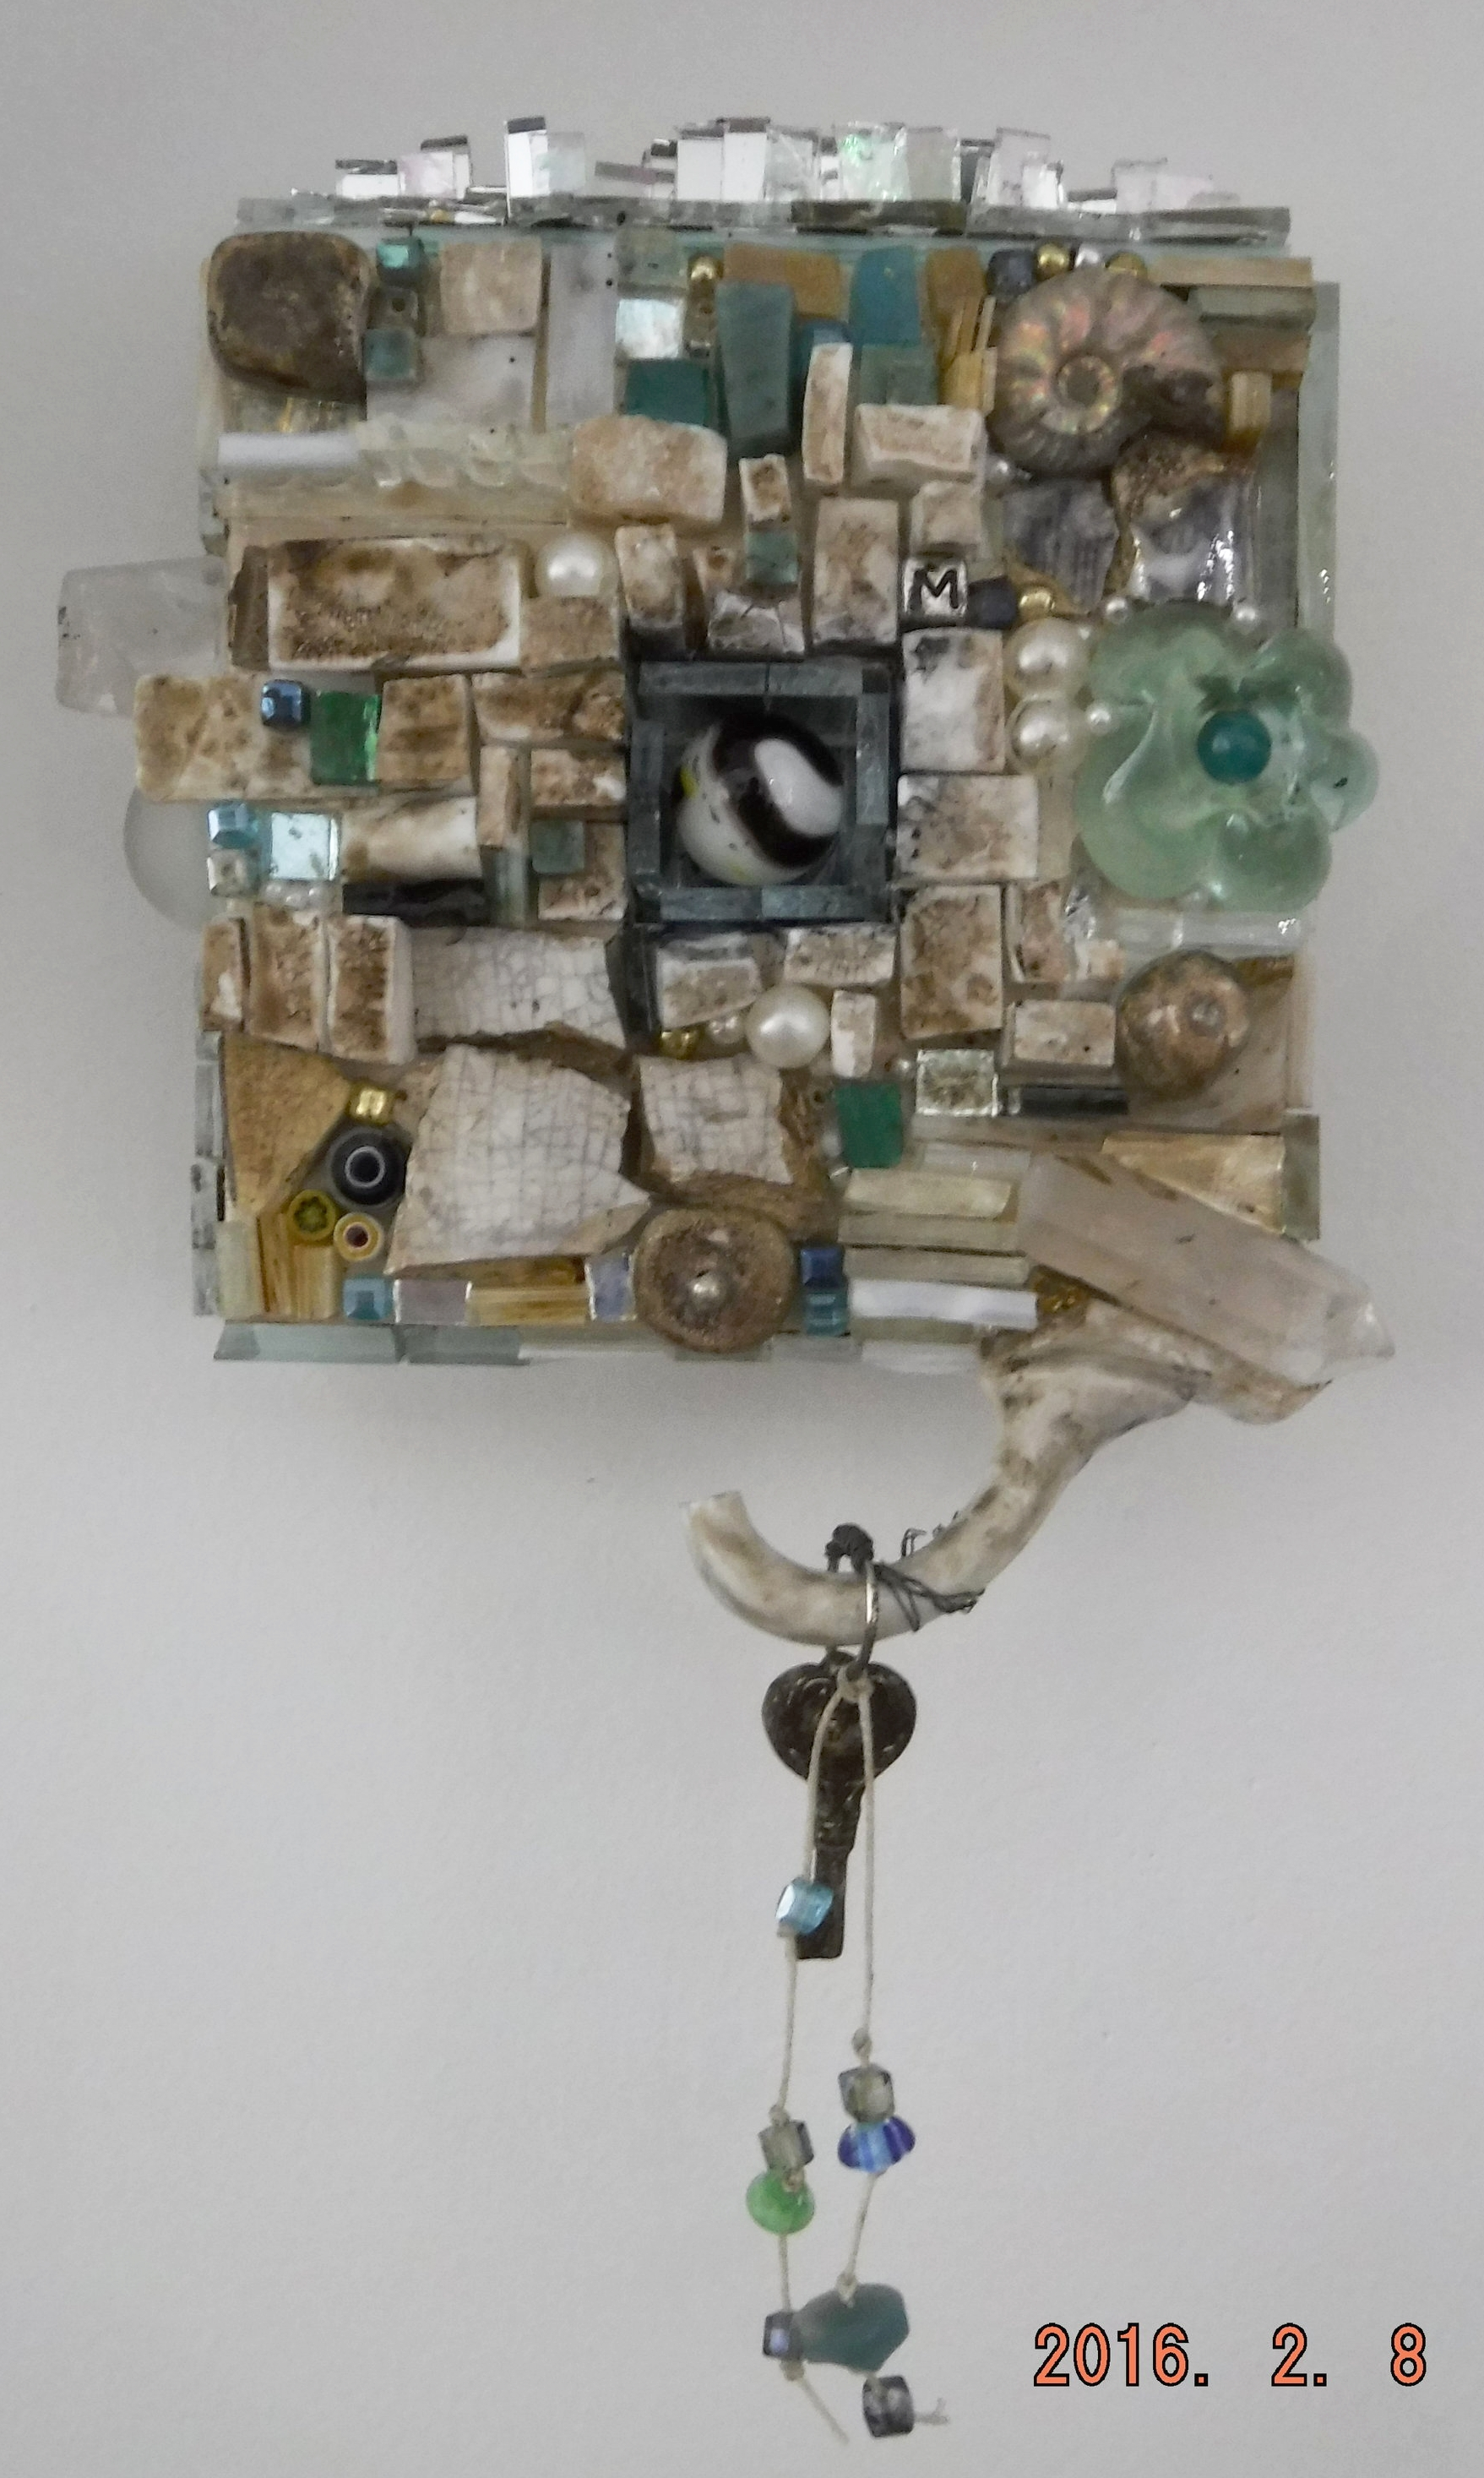 Glass mosaic in wooden shadow box, glass, beads, found objects, pottery, waxed thread, ammonite.